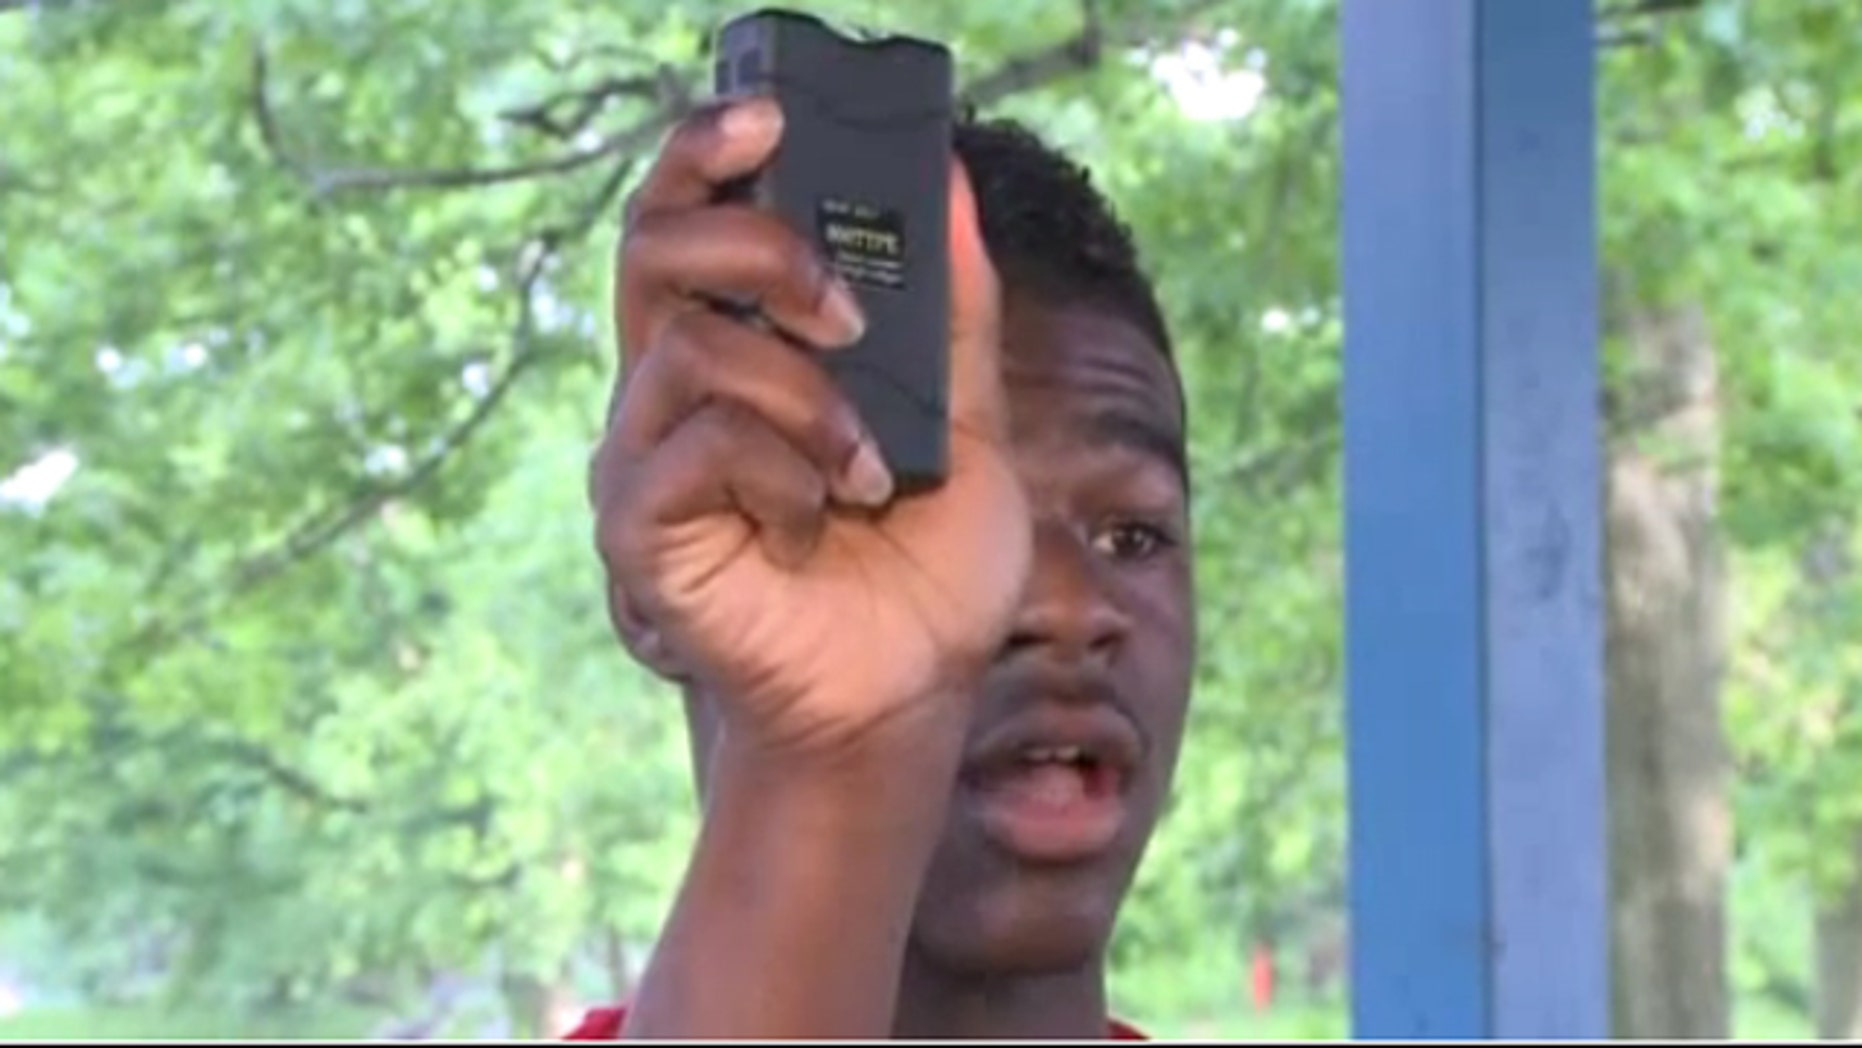 """I raised it up, and then I pushed the button twice,"" Darnell Young, 17, a student at Arsenal Tech High School in Indianapolis told Fox59.com."